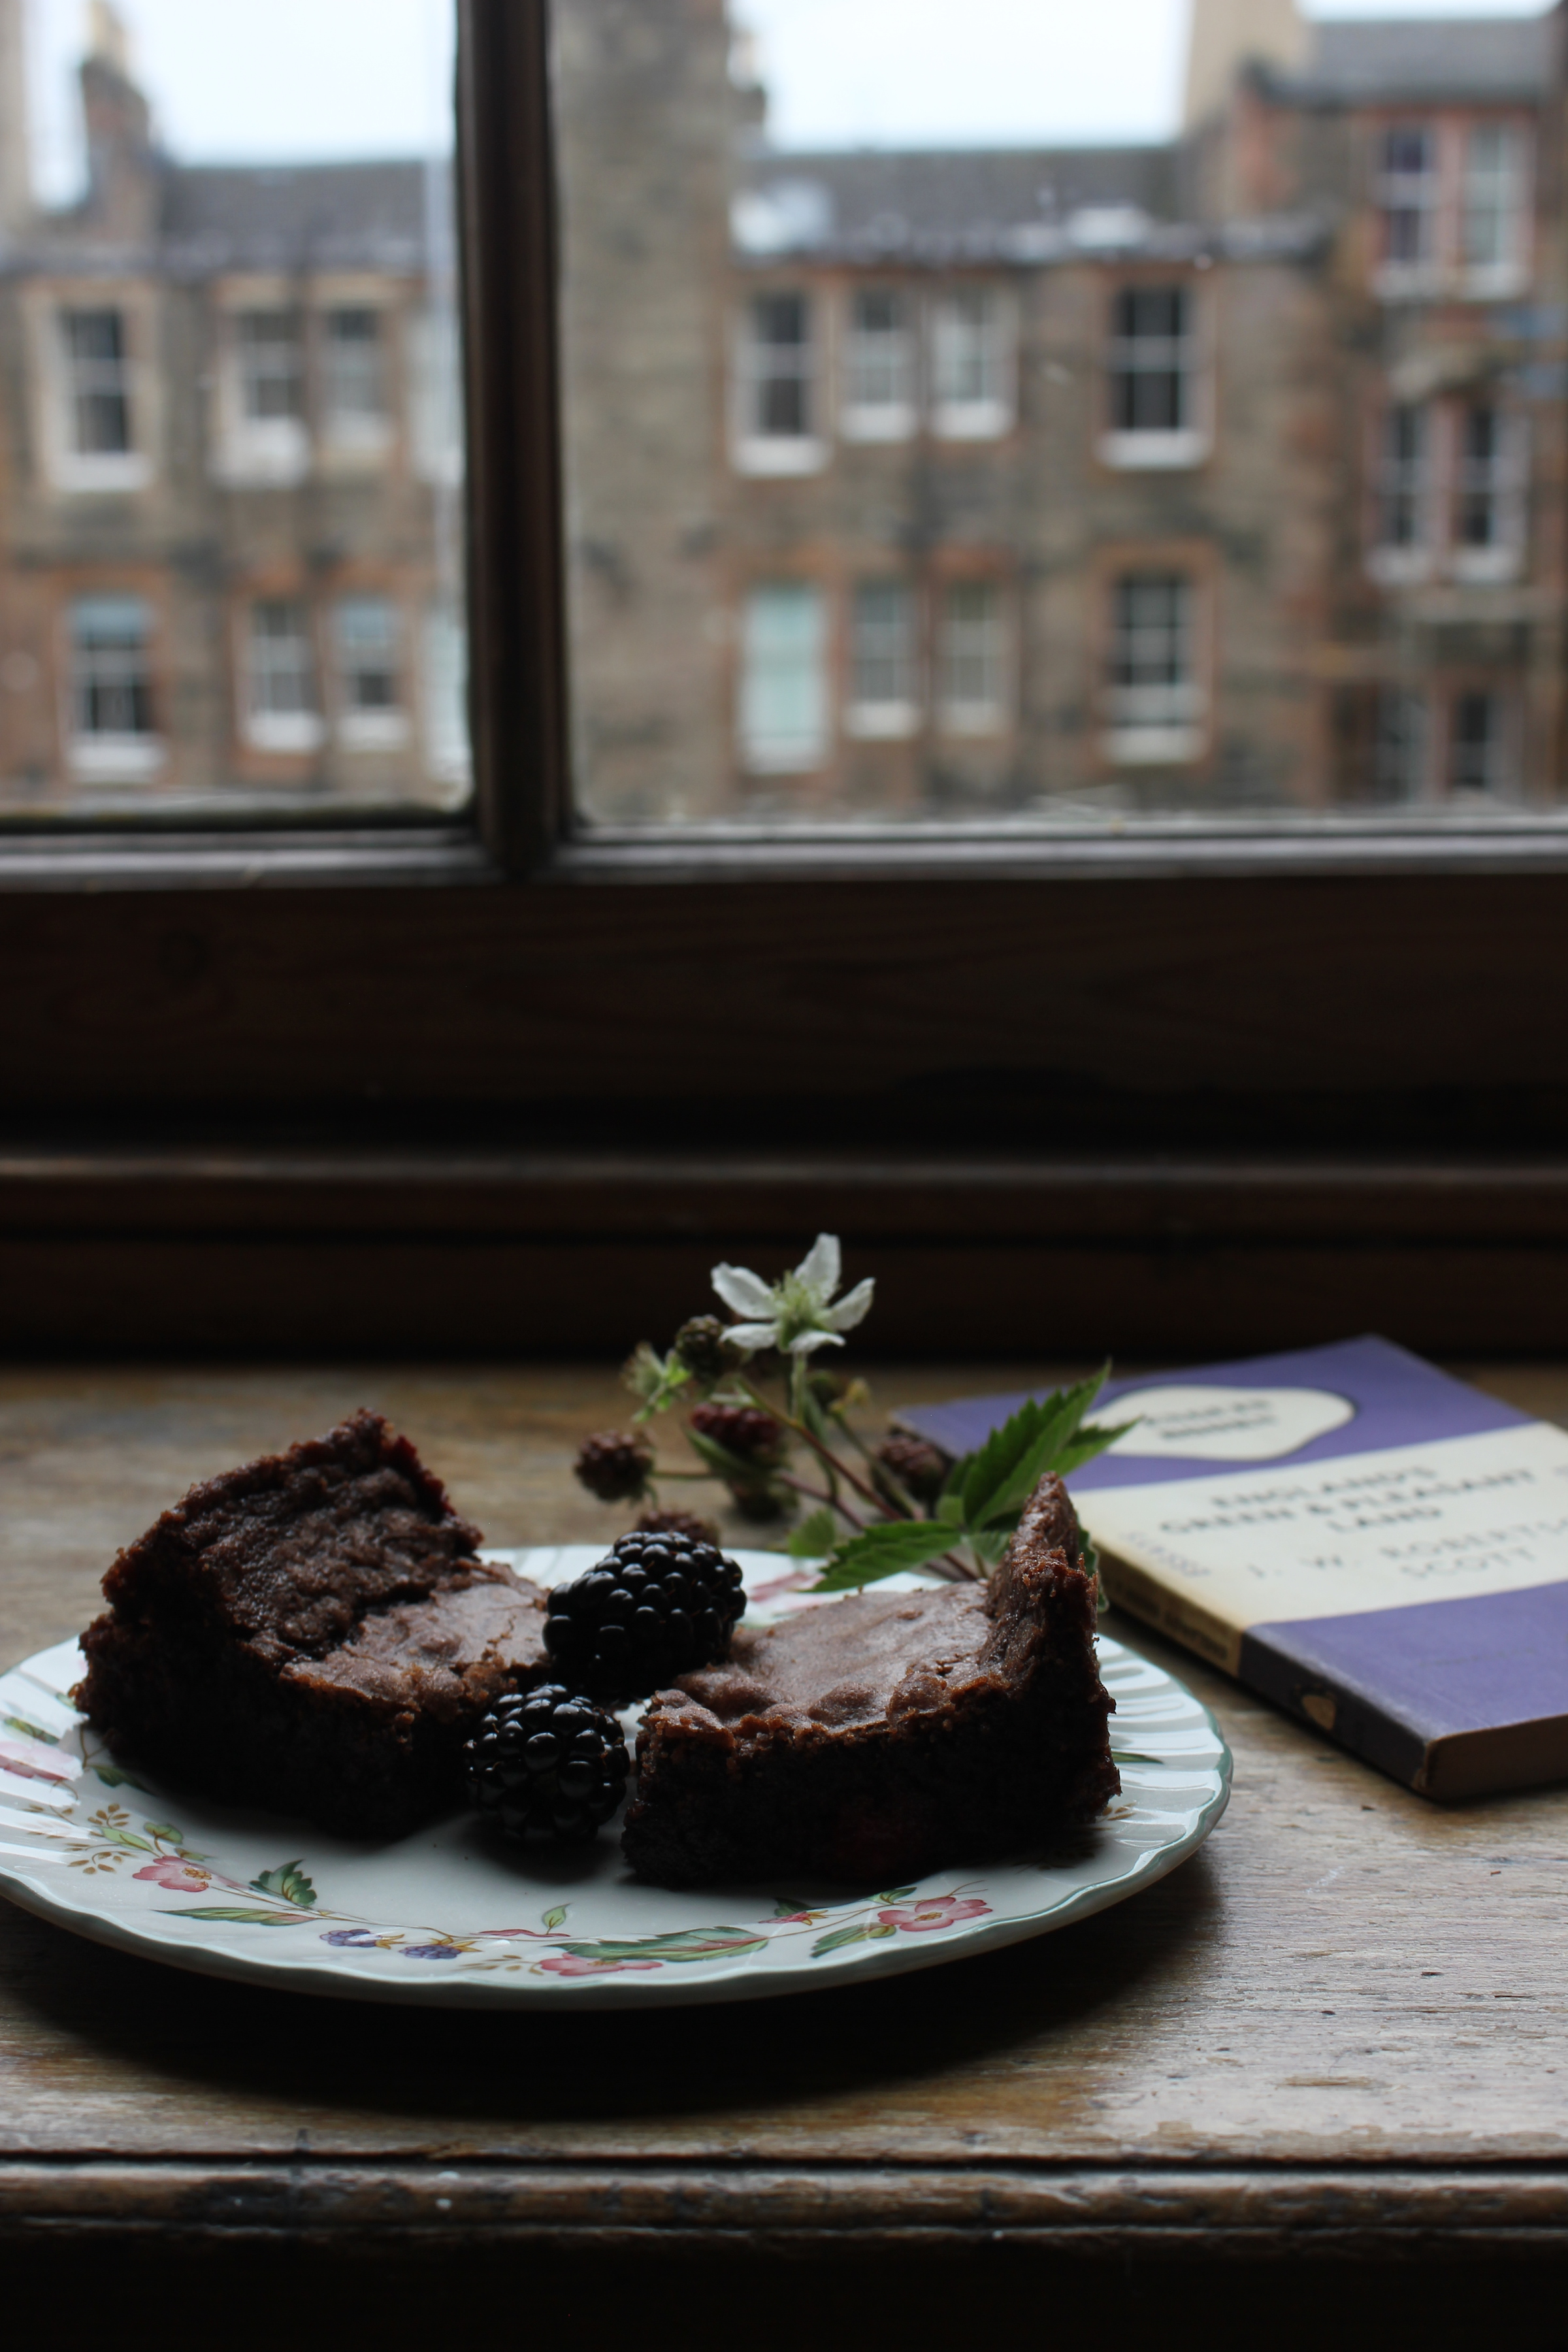 Blackberry and cardamom brownies